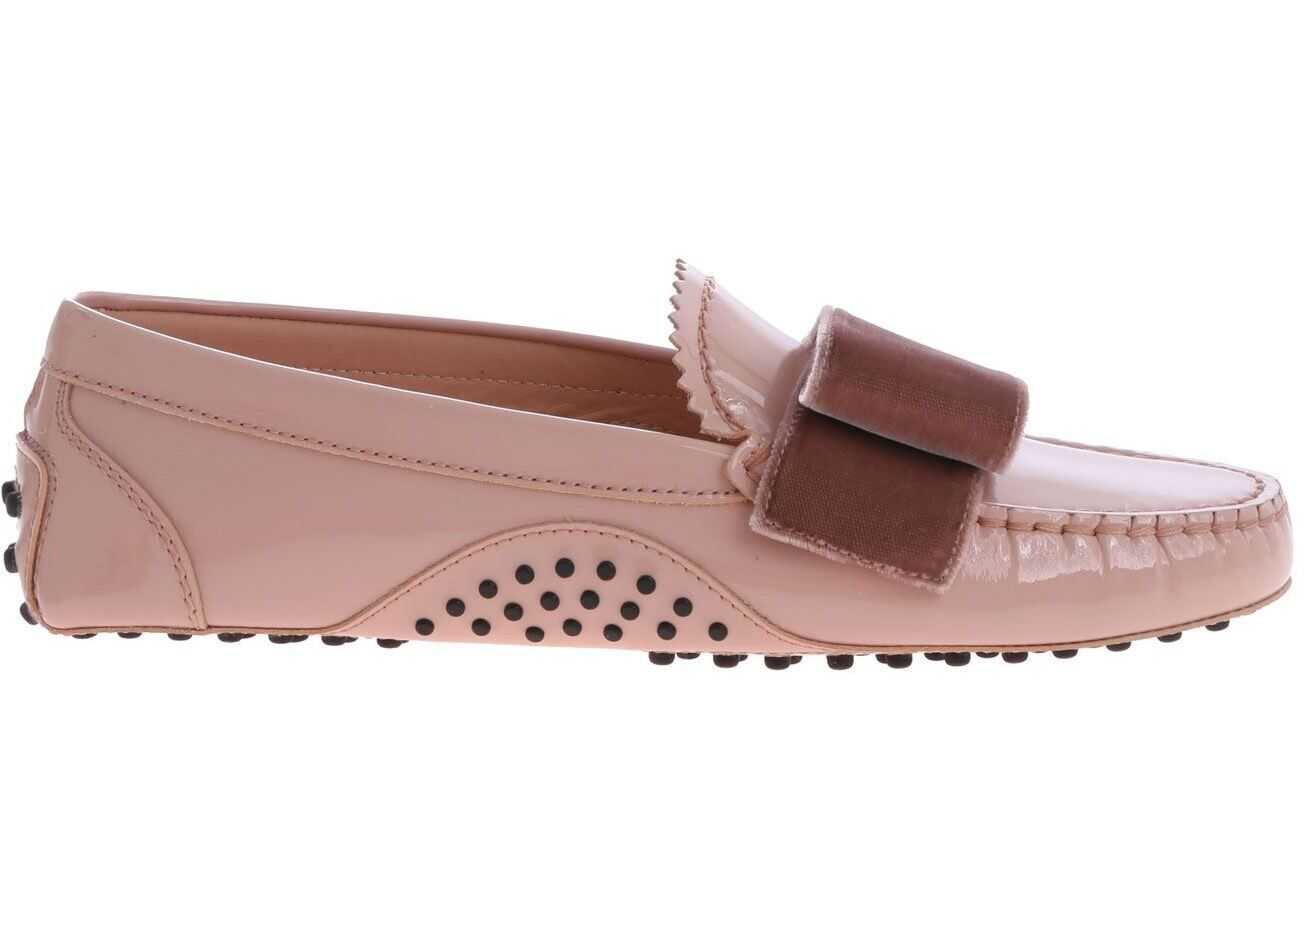 TOD'S Pink Loafers With Velvet Bow XXW00G0BI81L64M030 Pink imagine b-mall.ro